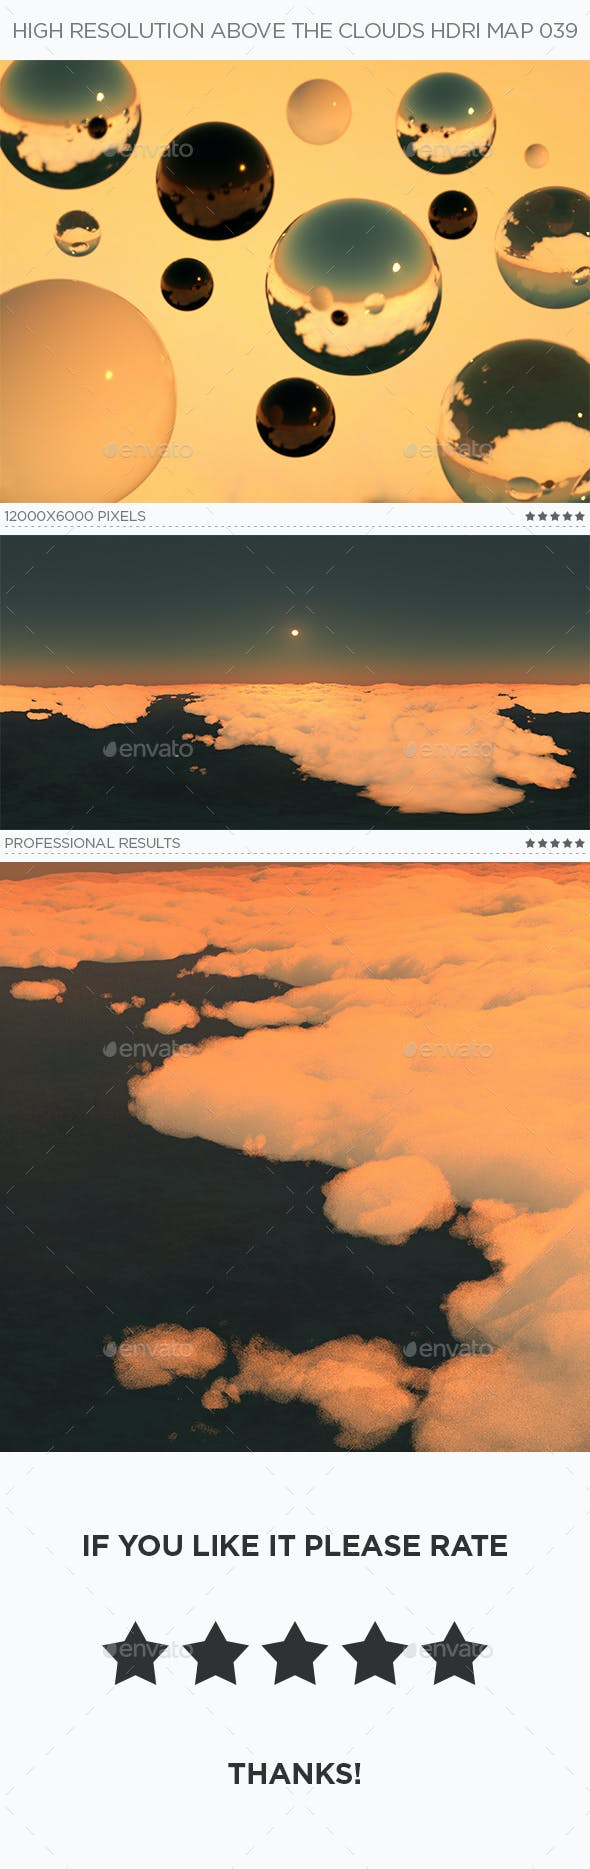 High Resolution Above The Clouds HDRi Map 039 - 3DOcean Item for Sale